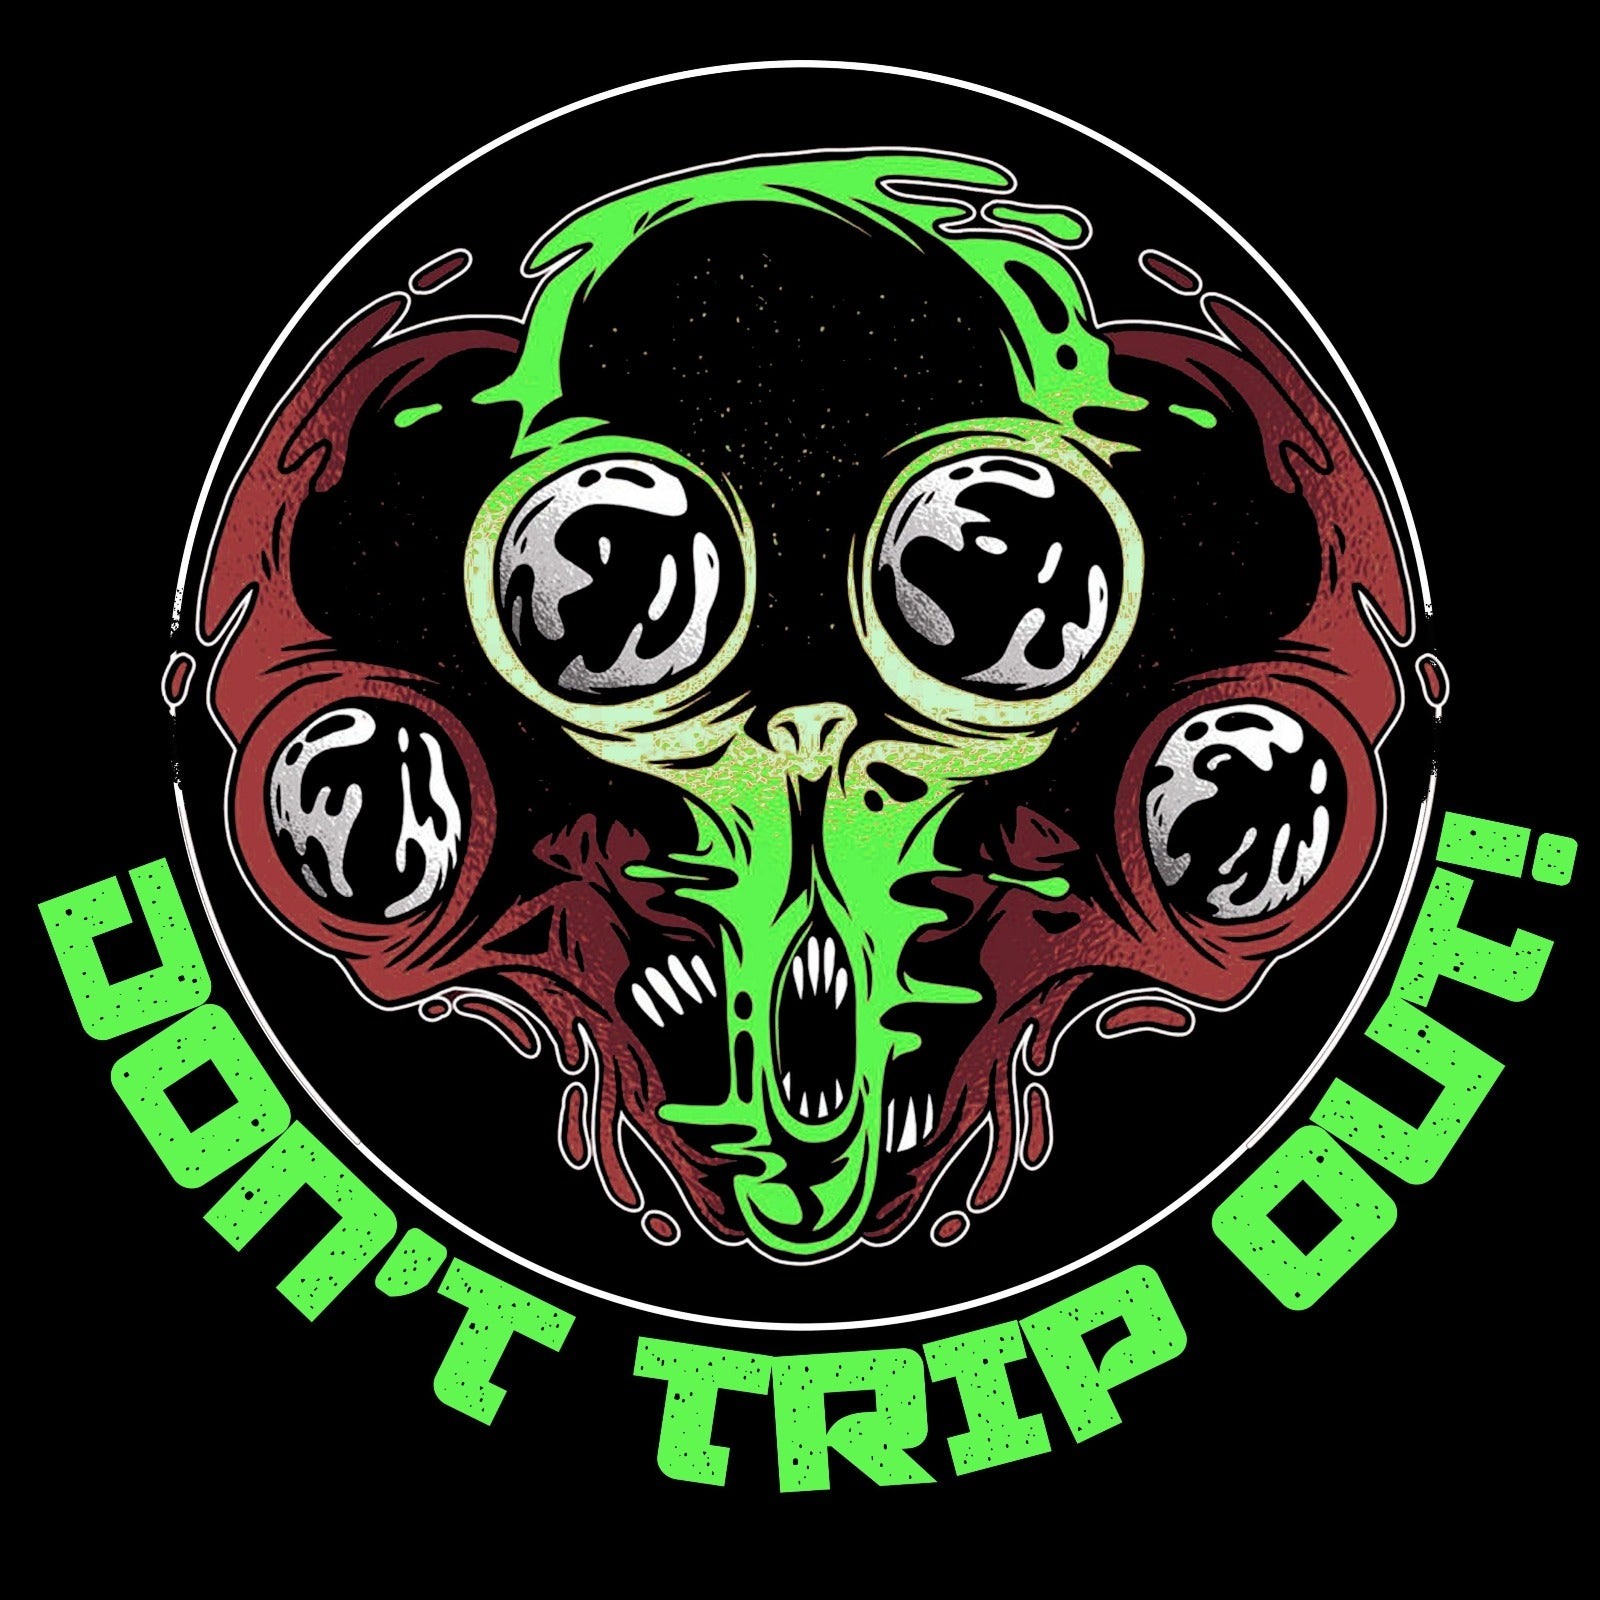 Don't Trip Out - Bastard Graphics